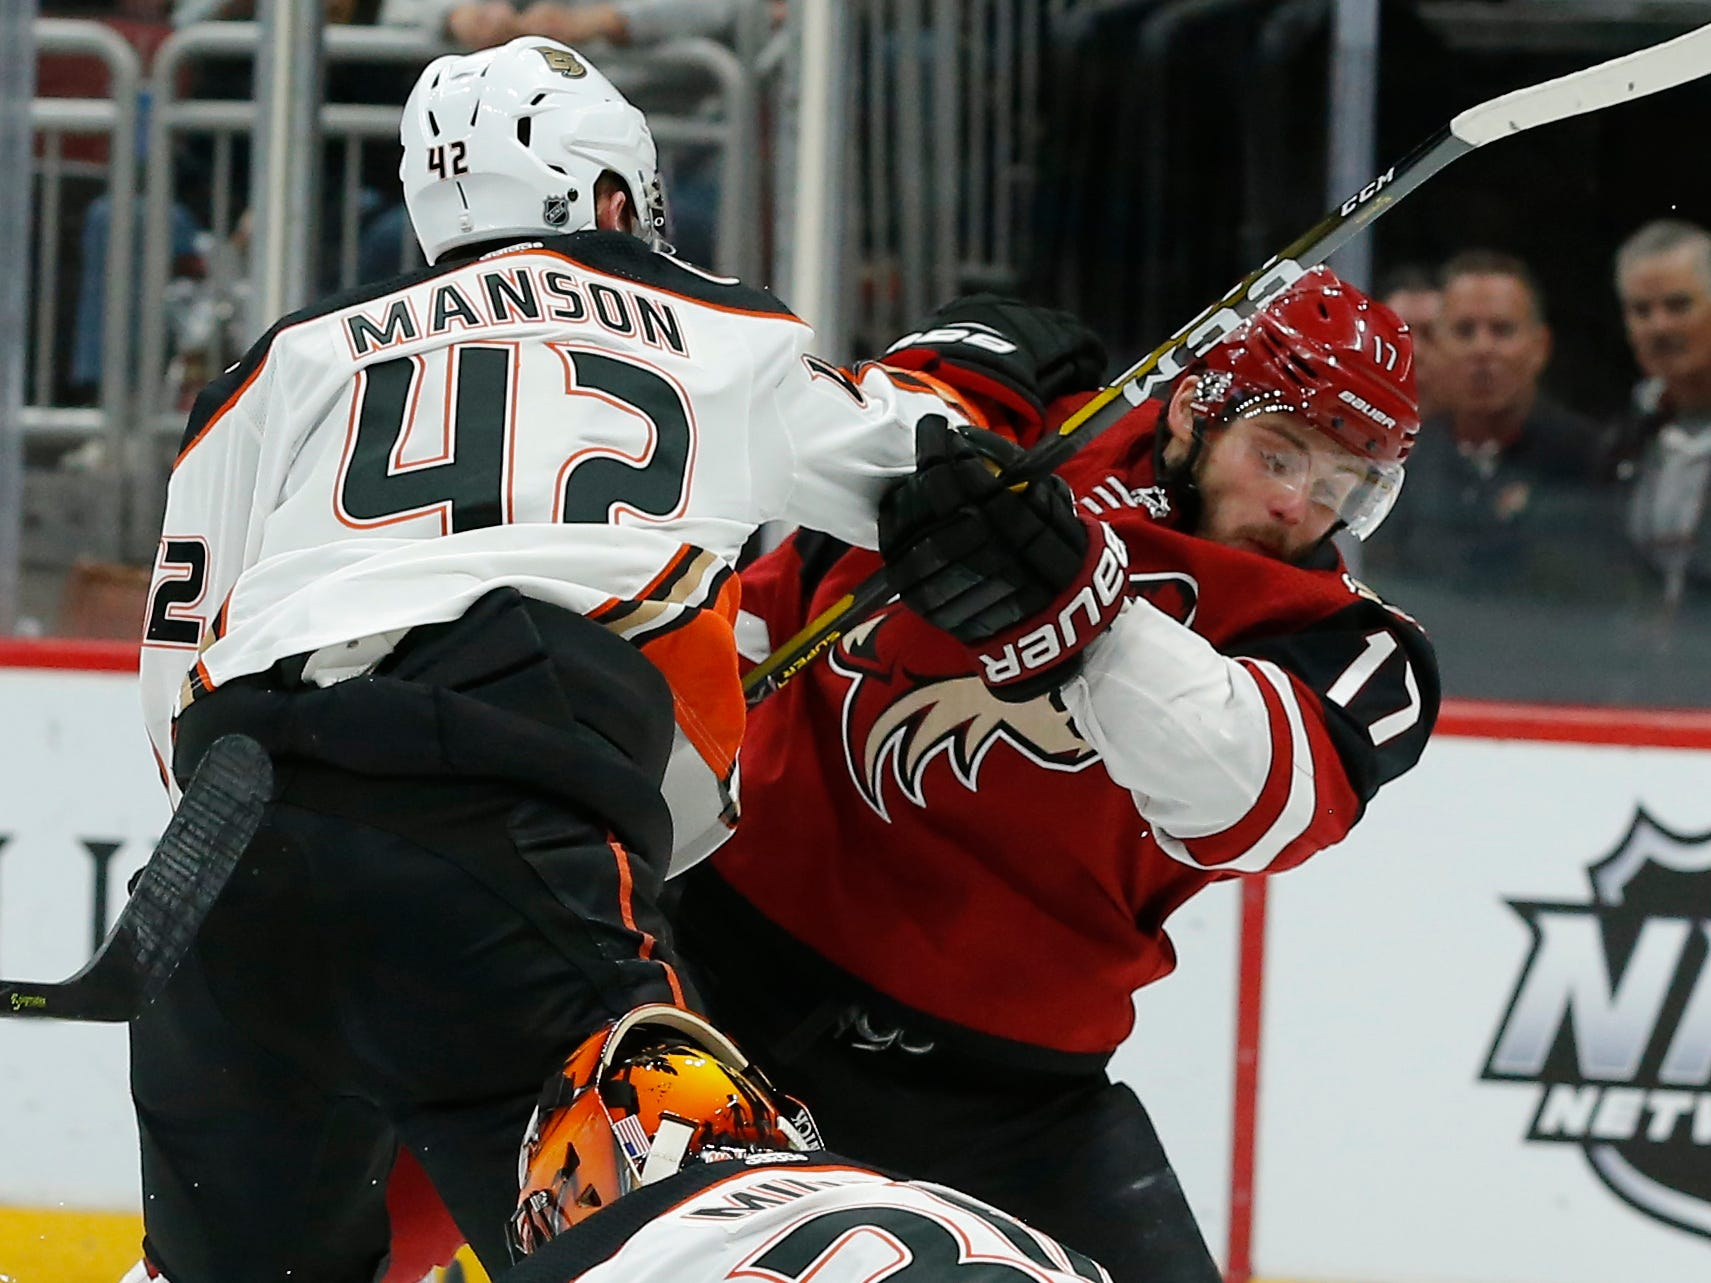 Anaheim Ducks goaltender Ryan Miller (30) covers up the puck as Josh Manson (42) clears Arizona Coyotes center Alex Galchenyuk (17) from the crease during the second period during an NHL hockey game Thursday, March 14, 2019, in Glendale, Ariz.